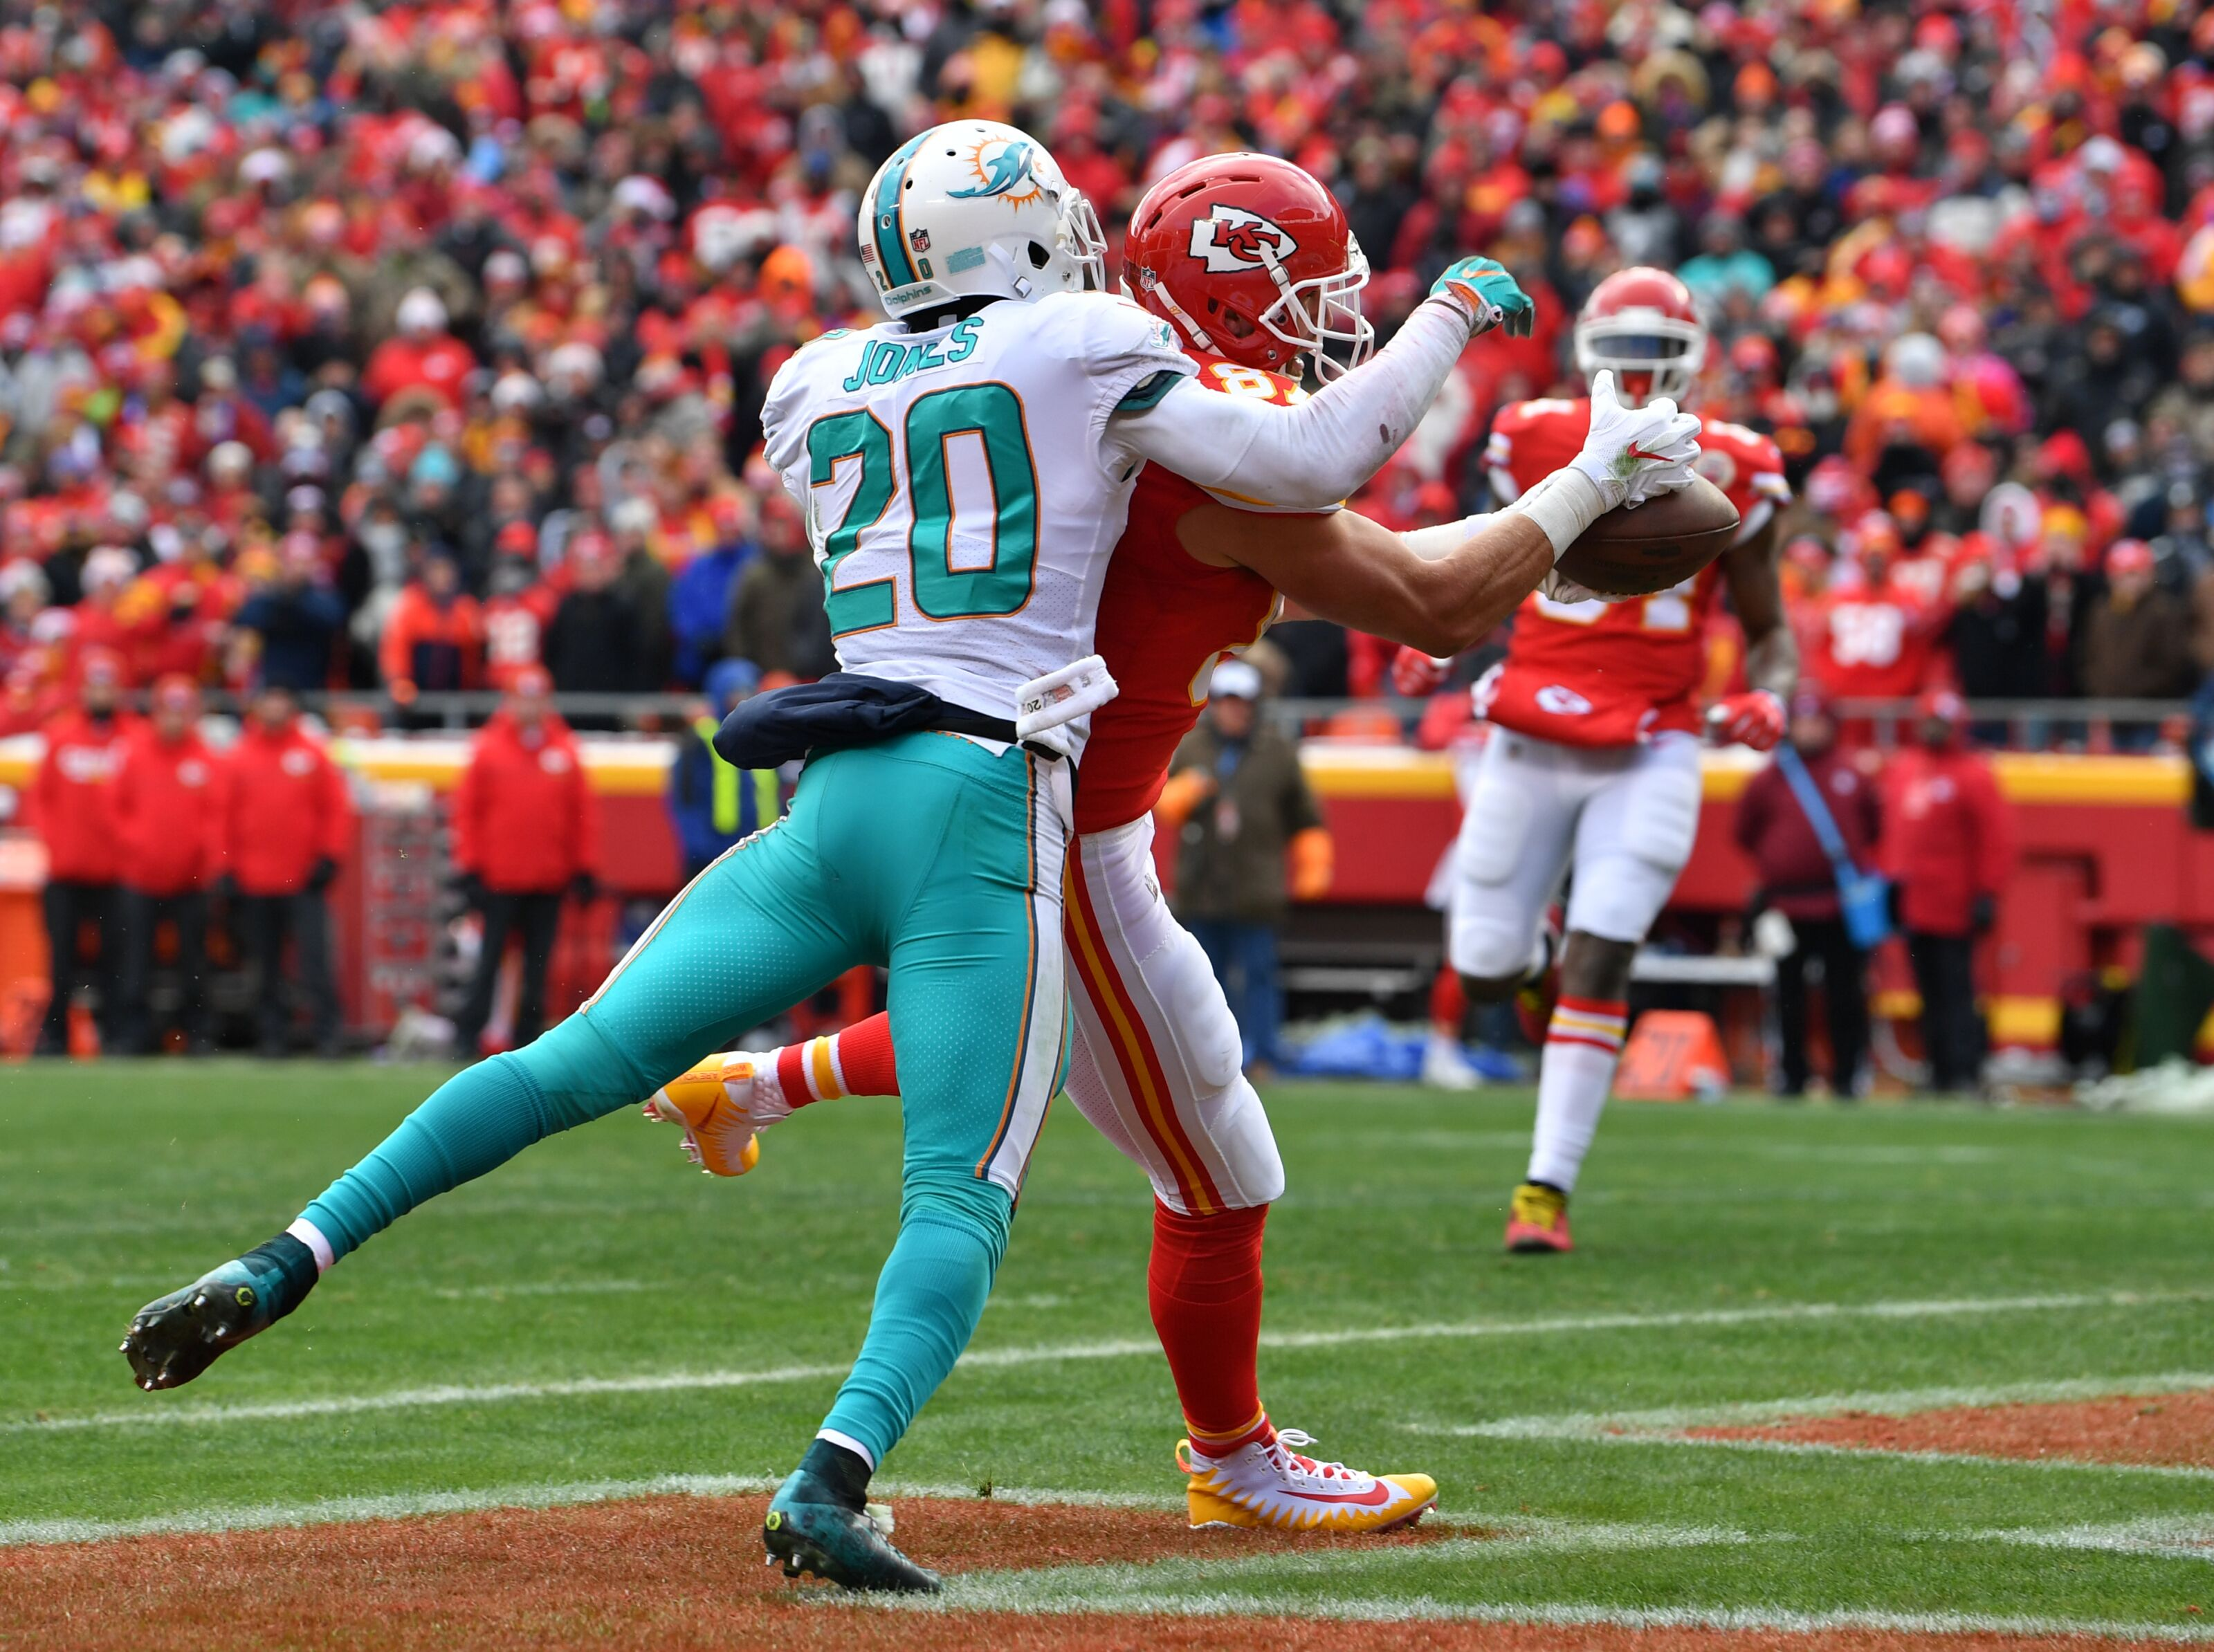 Miami Dolphins should trade these guys by league deadline